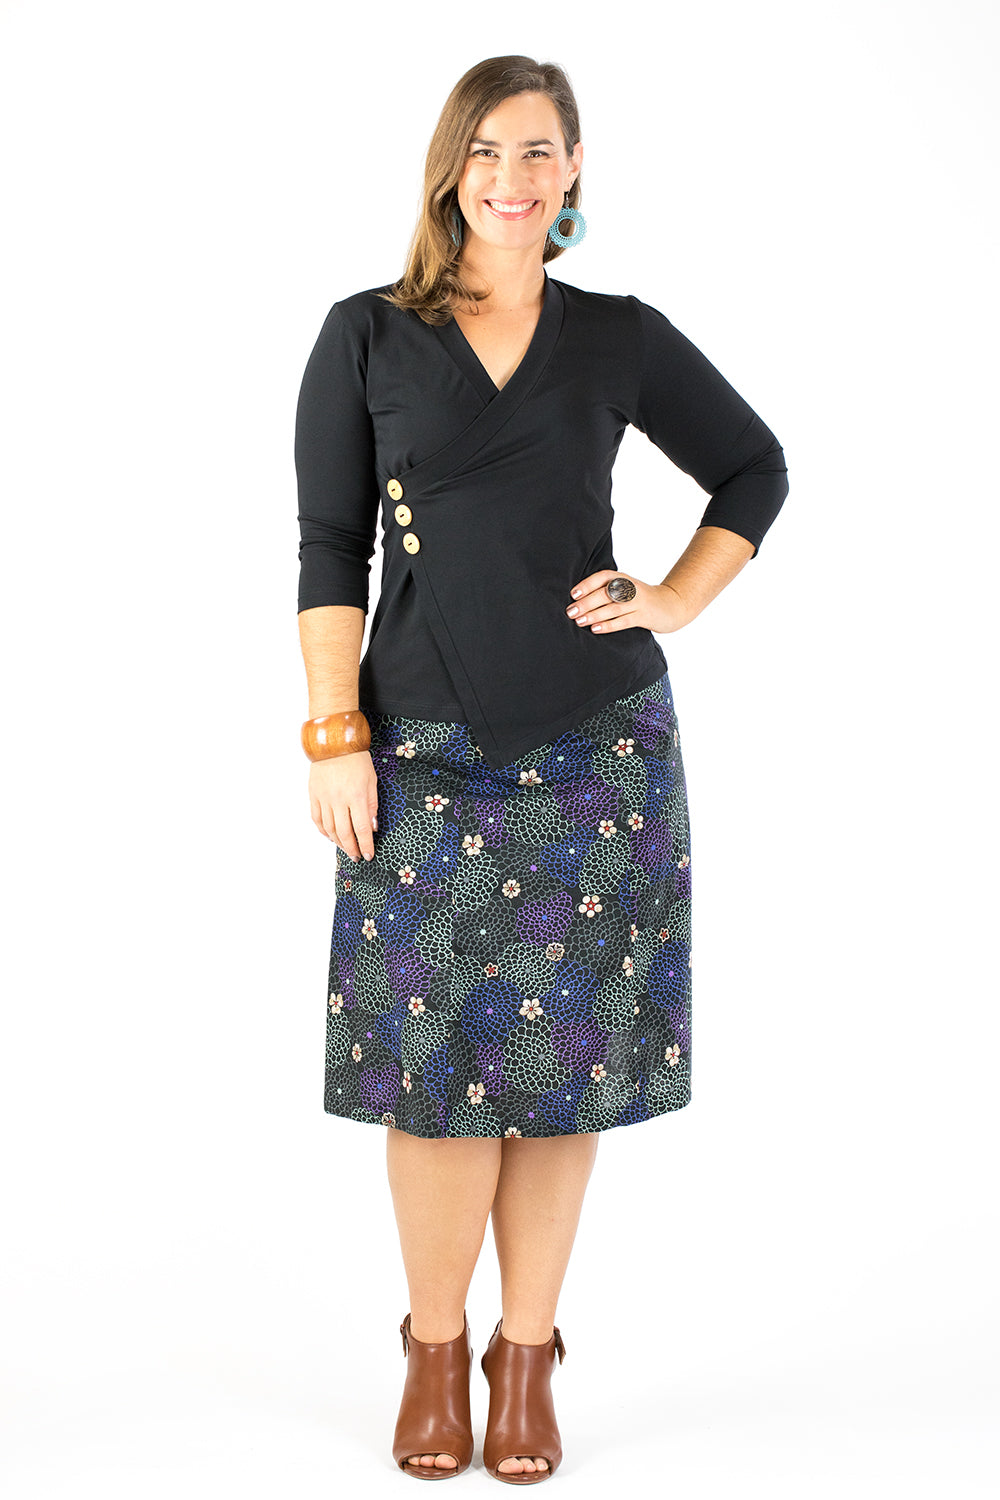 Casuarina Skirt - Japanese Garden in Black (8,10,12)